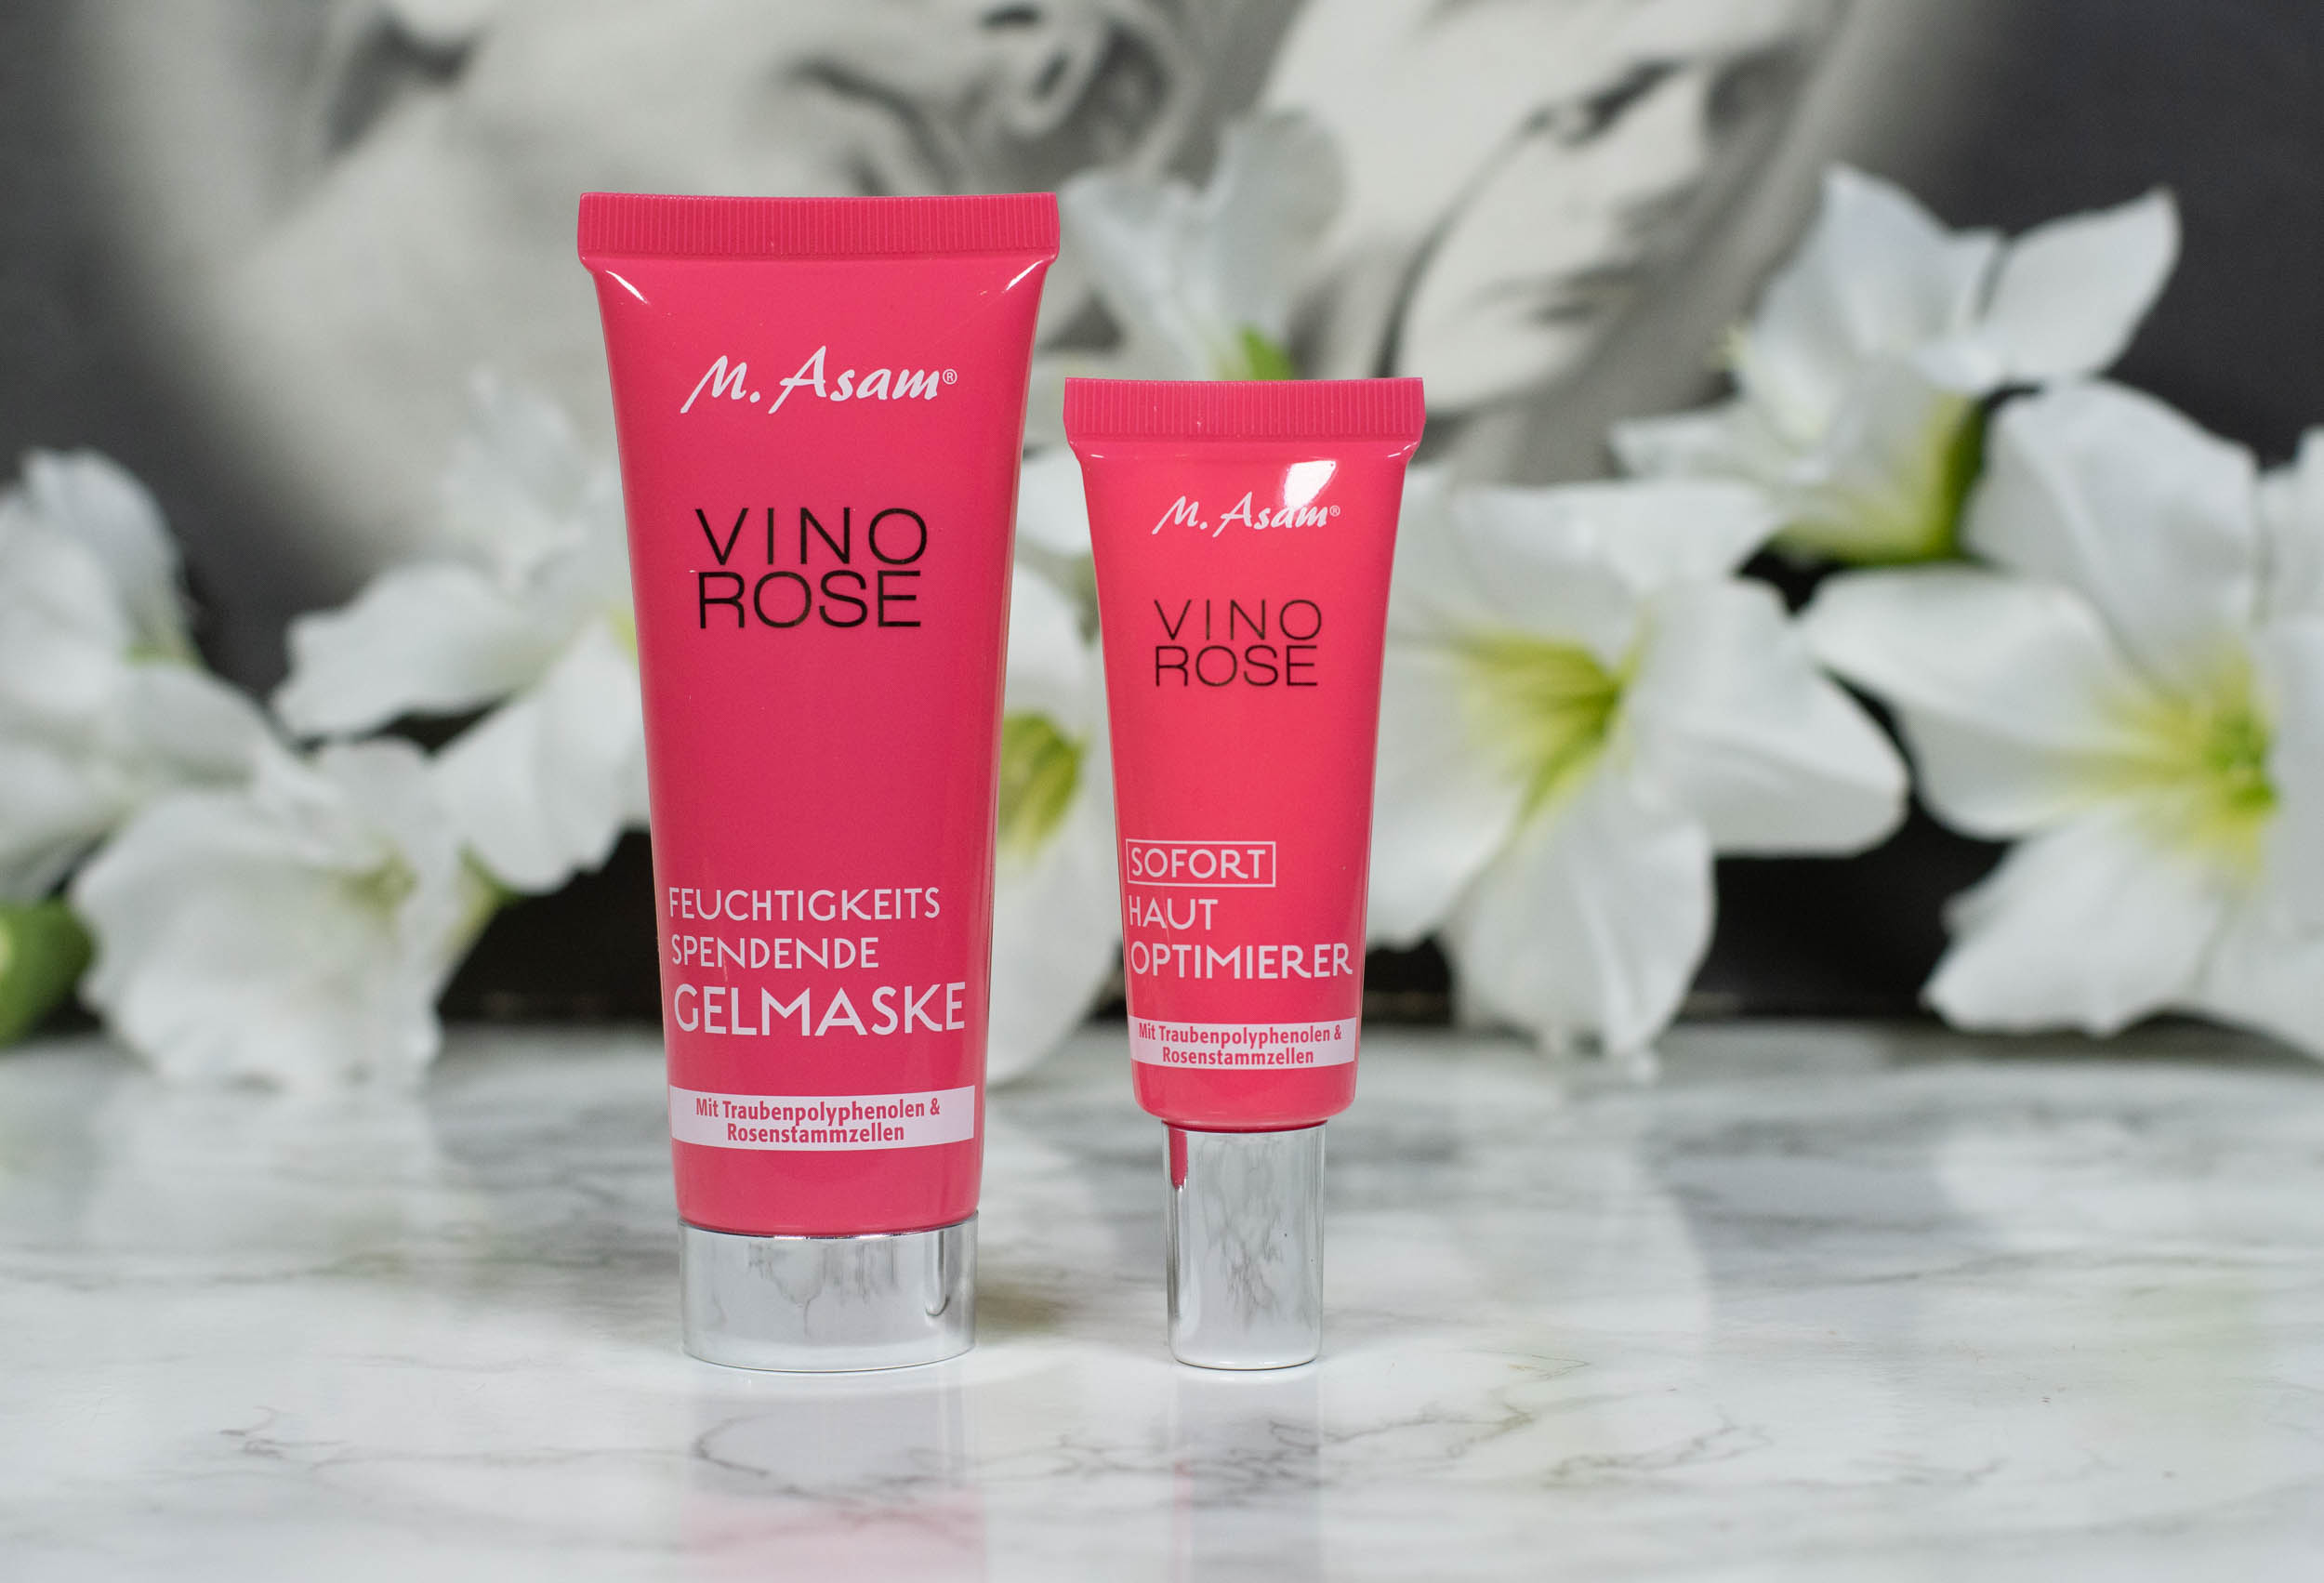 Asambeauty Vino Rose Hydrating Gel Mask and Instant Skin Perfector